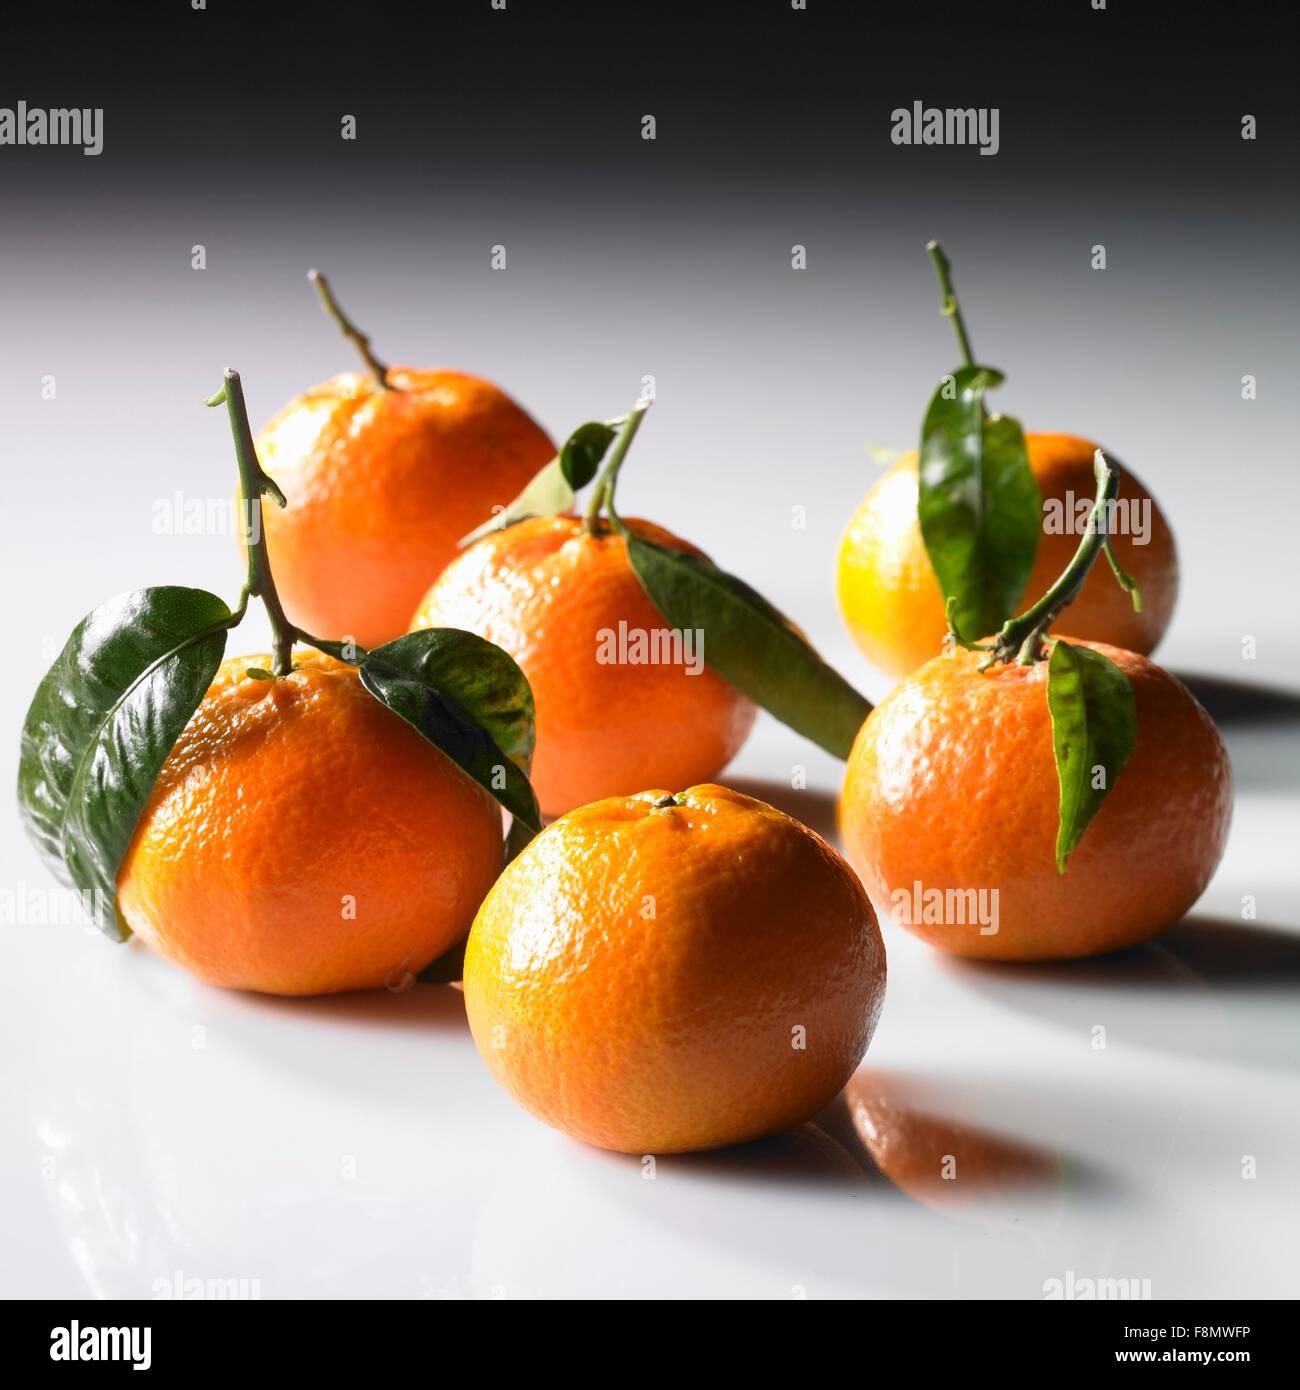 Mandarins with stems and leaves - Stock Image